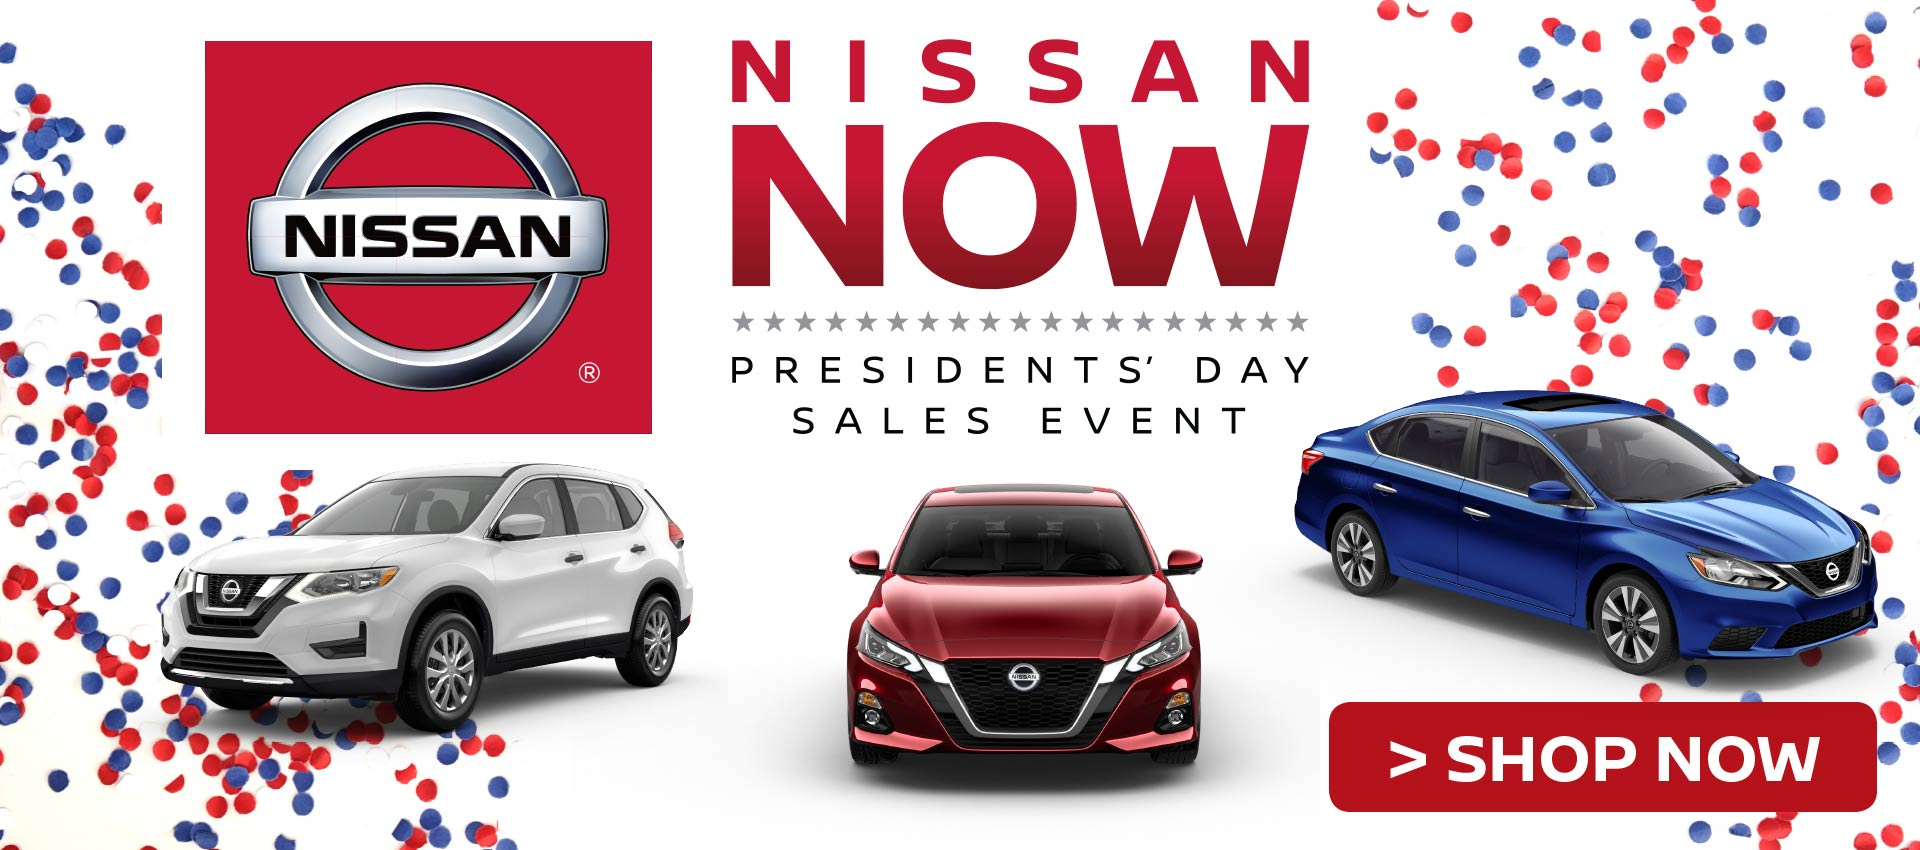 Mossy Nissan - Nissan Now Event HP